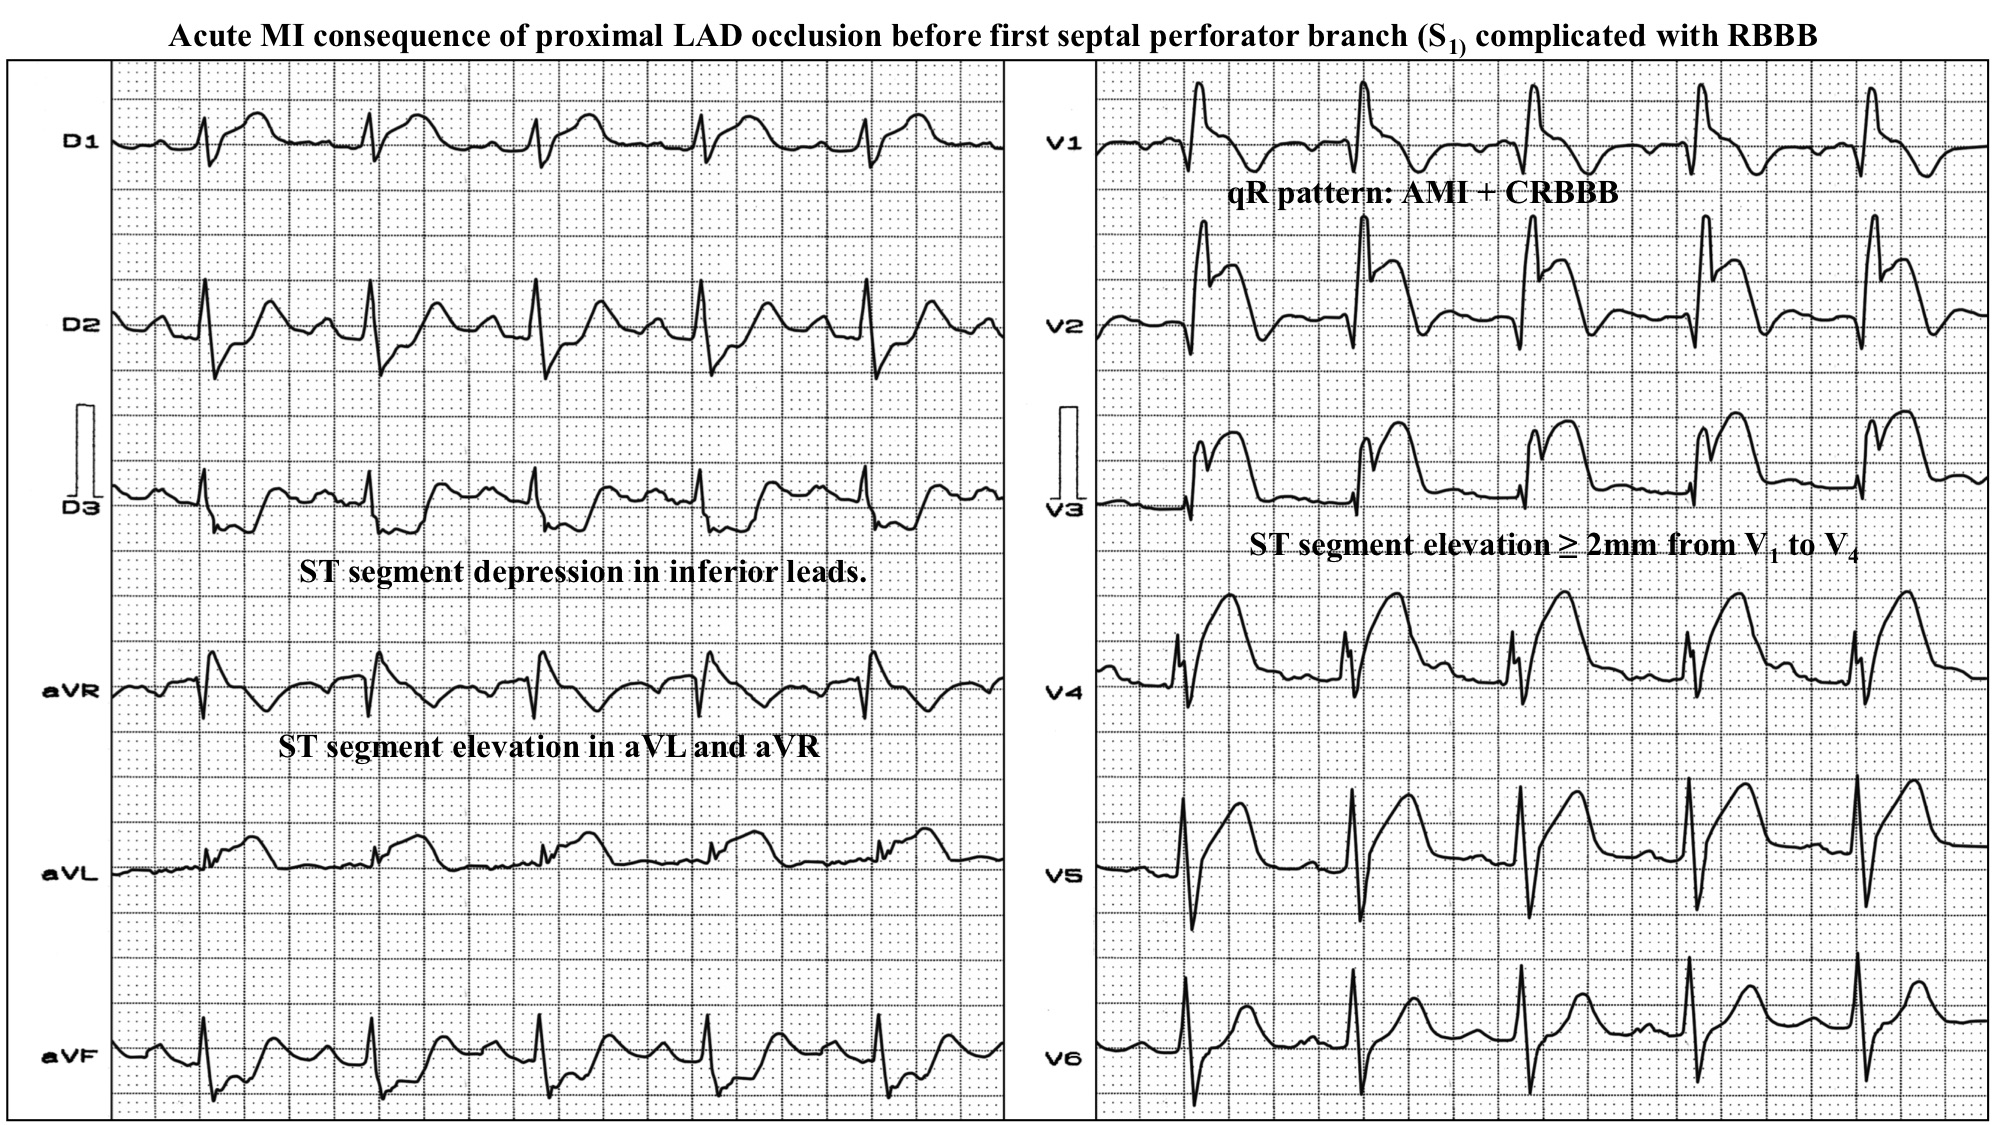 Acute MI consequence of proximal LAD occlusion before first septal perforator branch (S1) complicated with RBBB